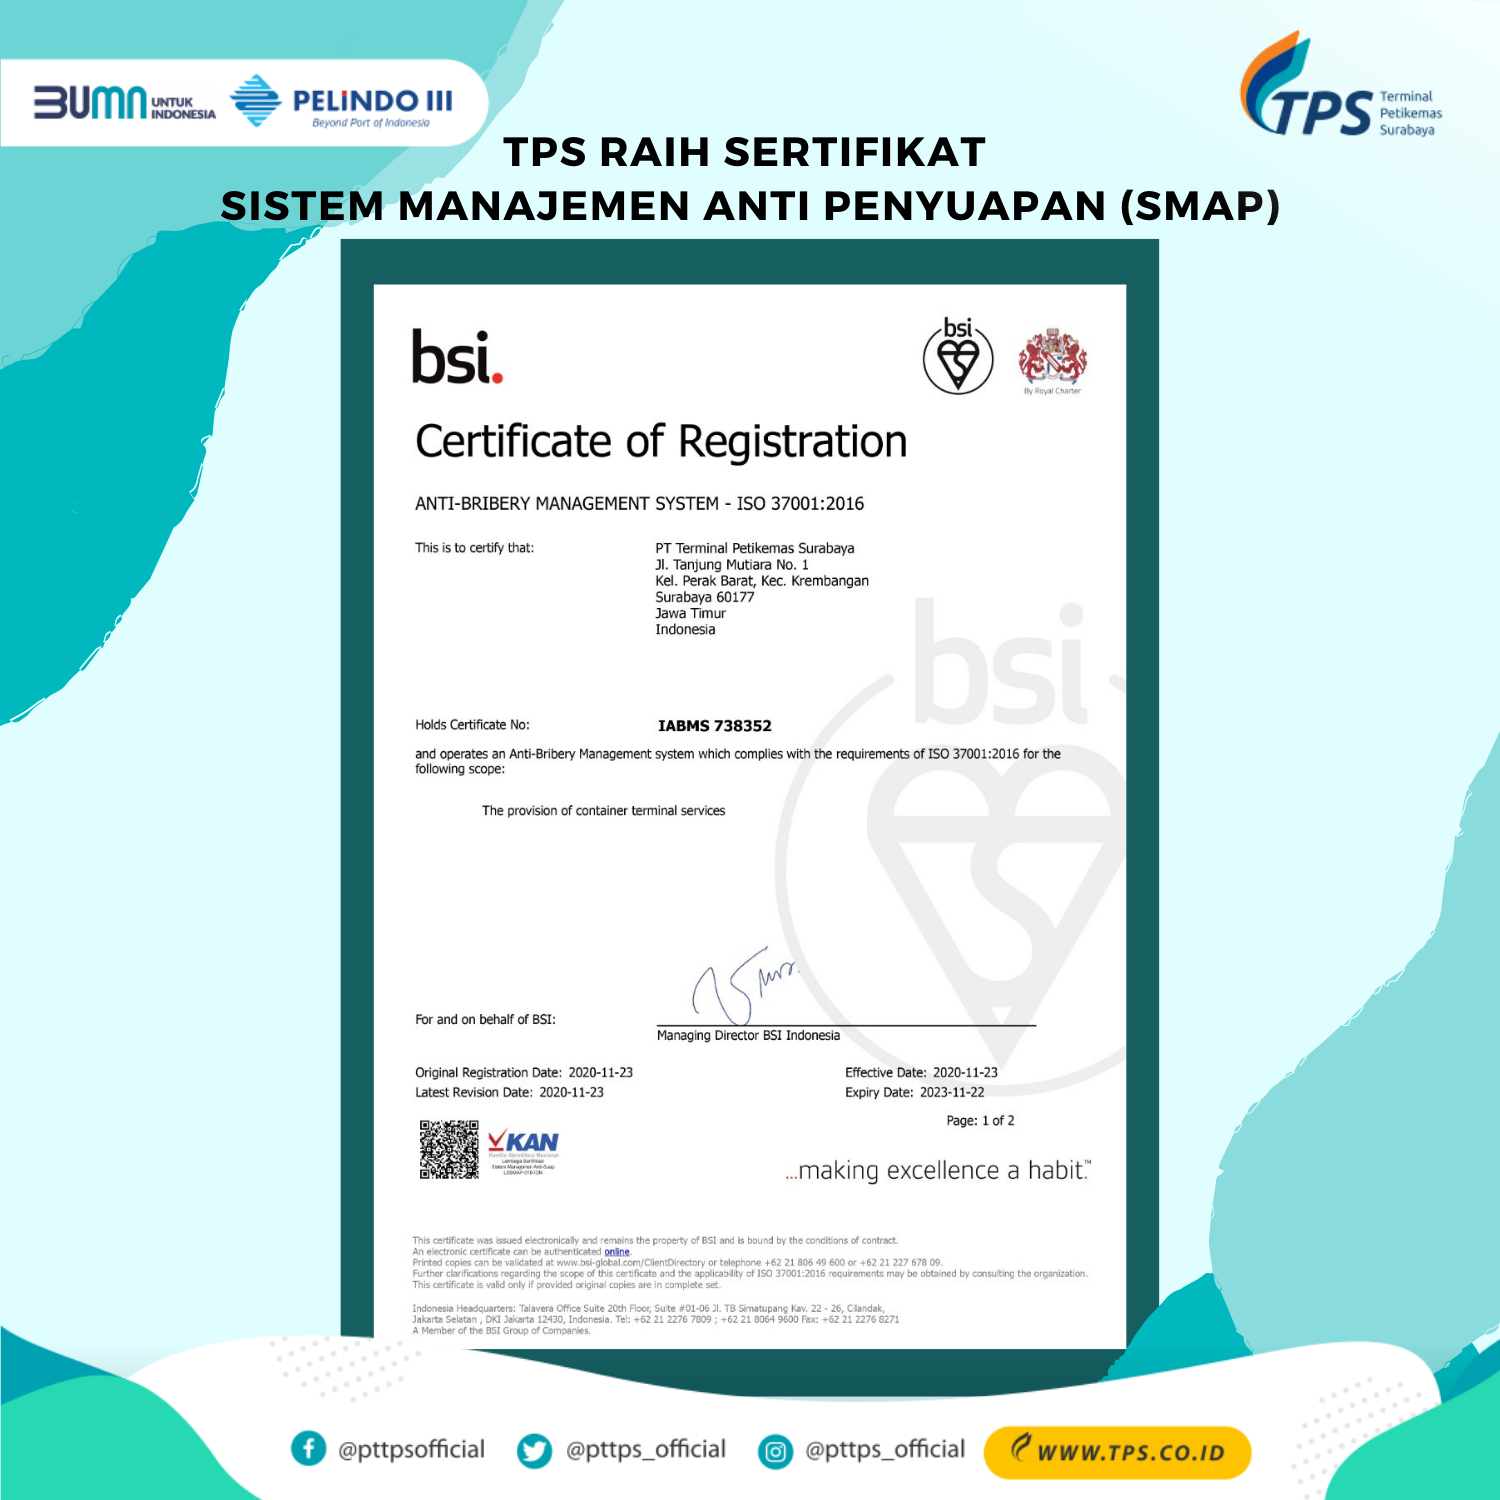 TPS has successfully achieved the Anti-Bribery Management System Certificate (SMAP) - ISO 37001: 2016.